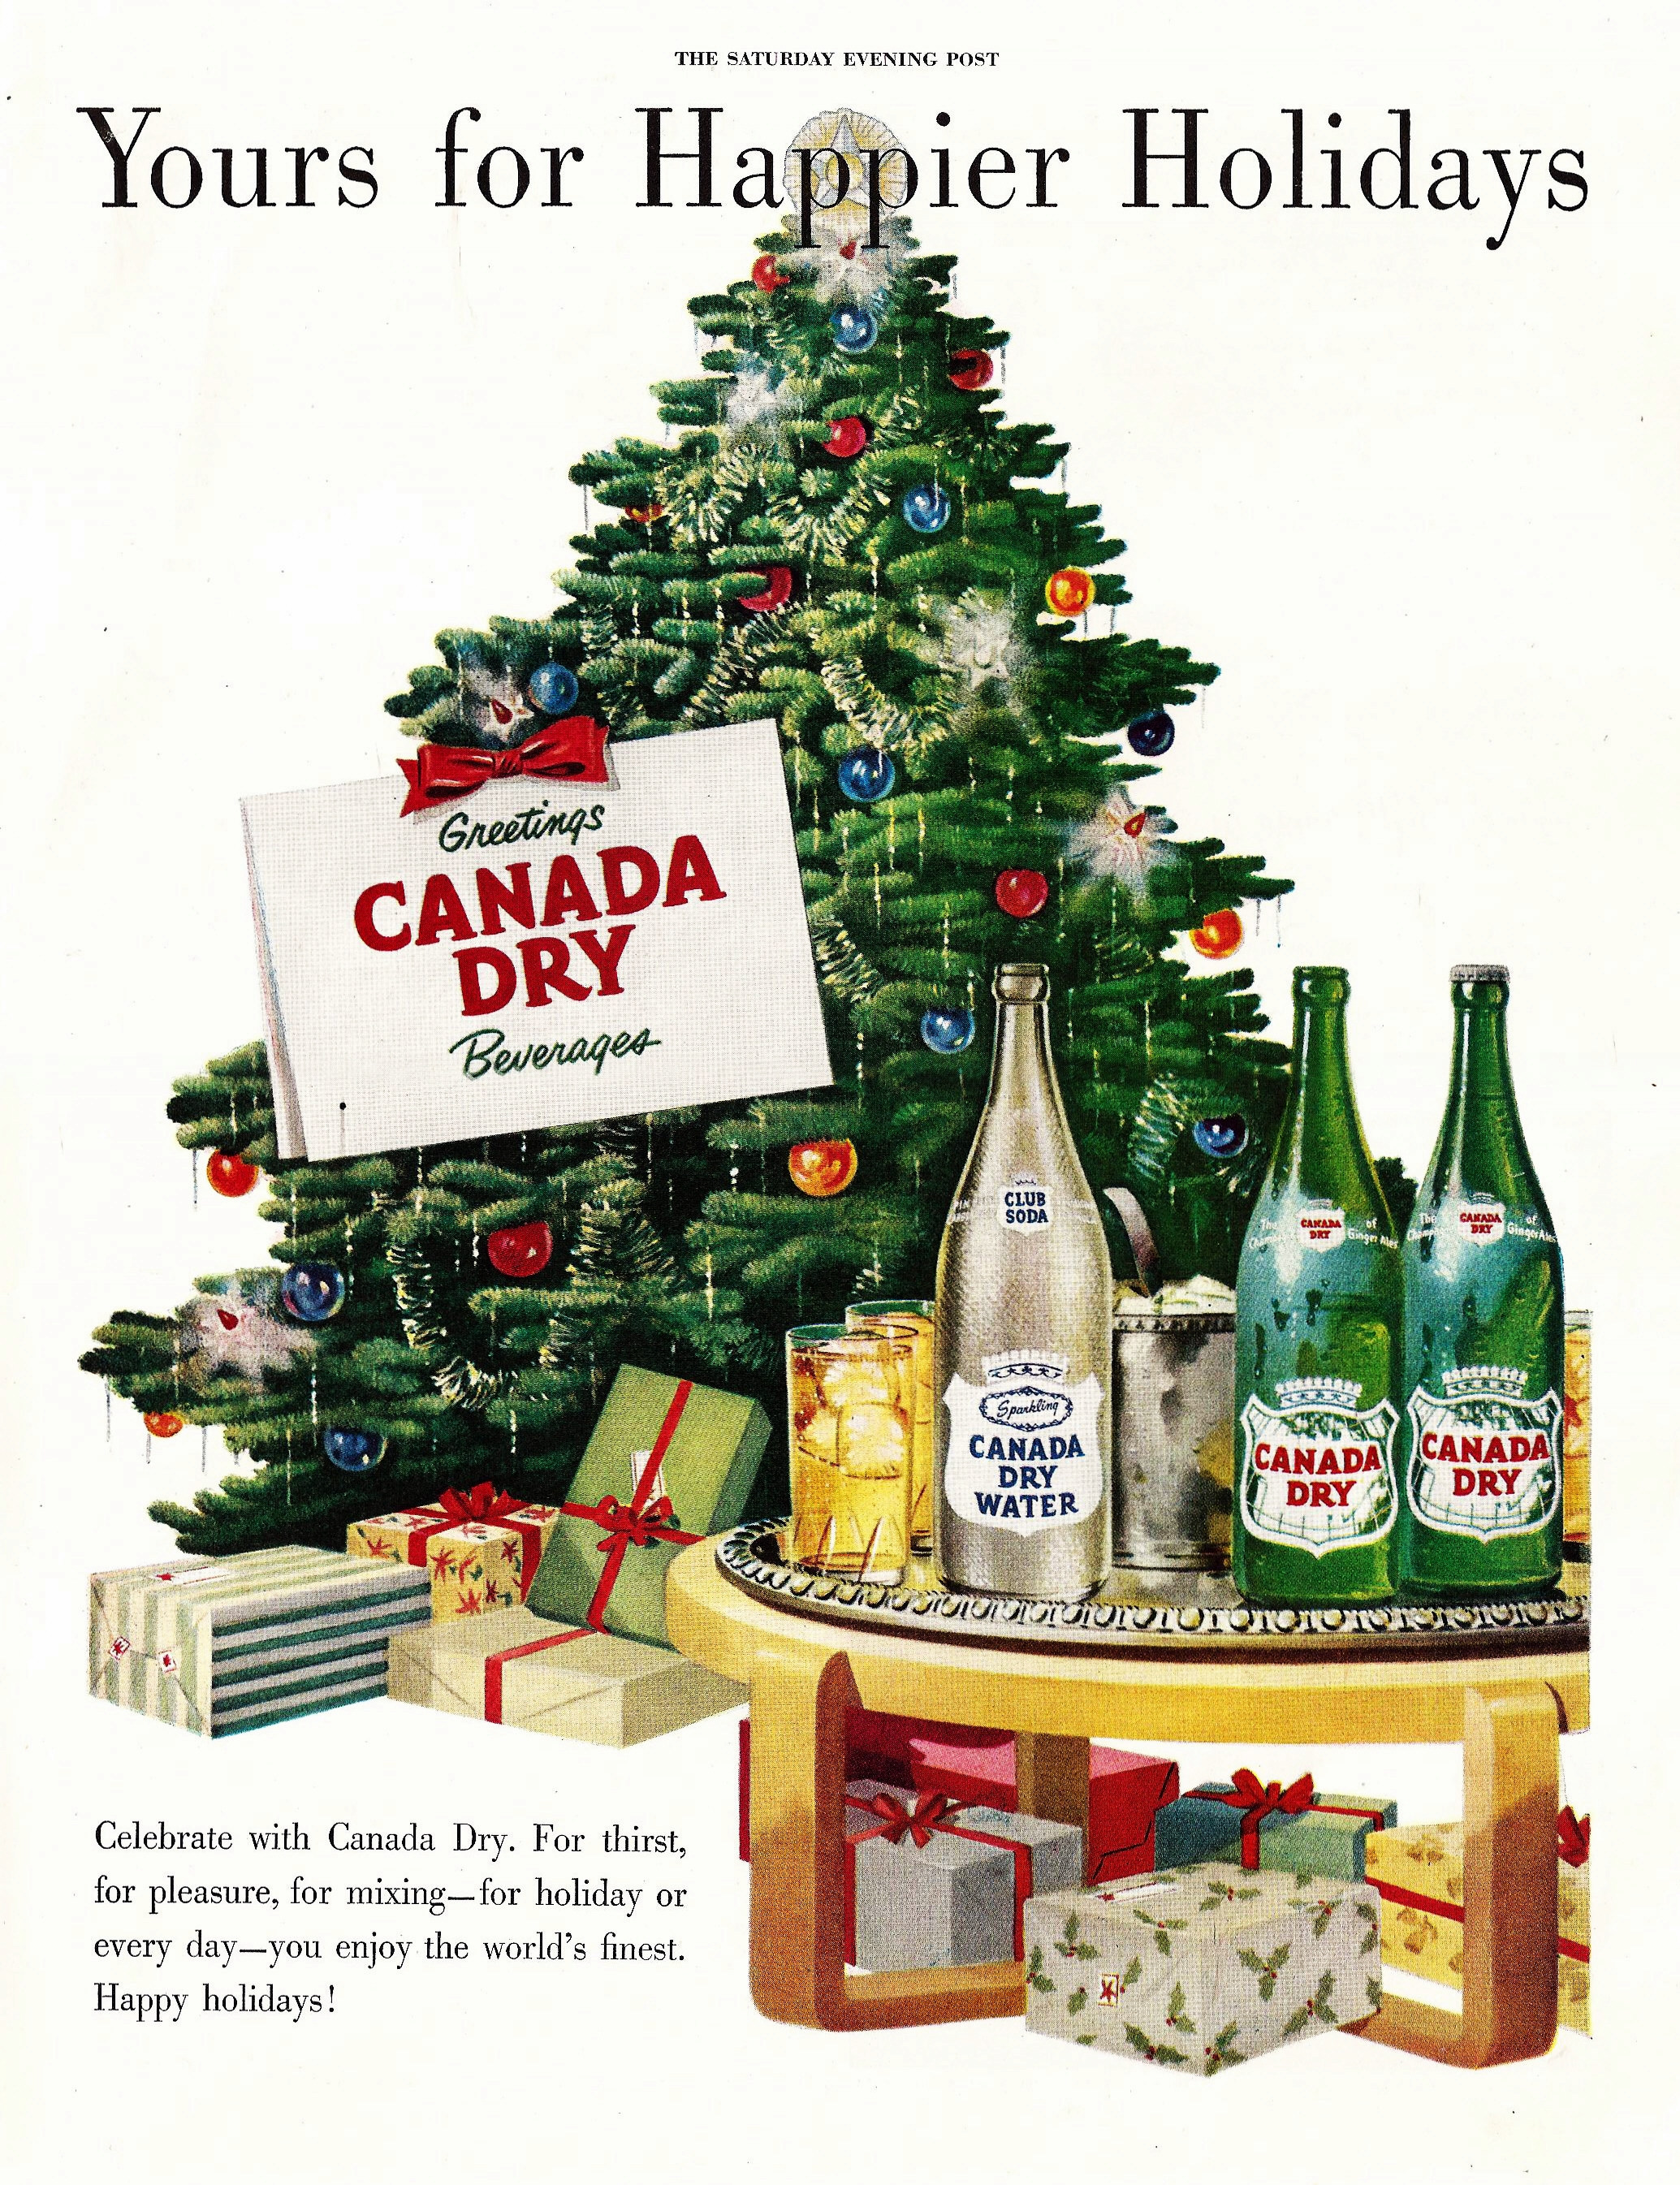 Canada Dry - published in The Saturday Evening Post - 1948